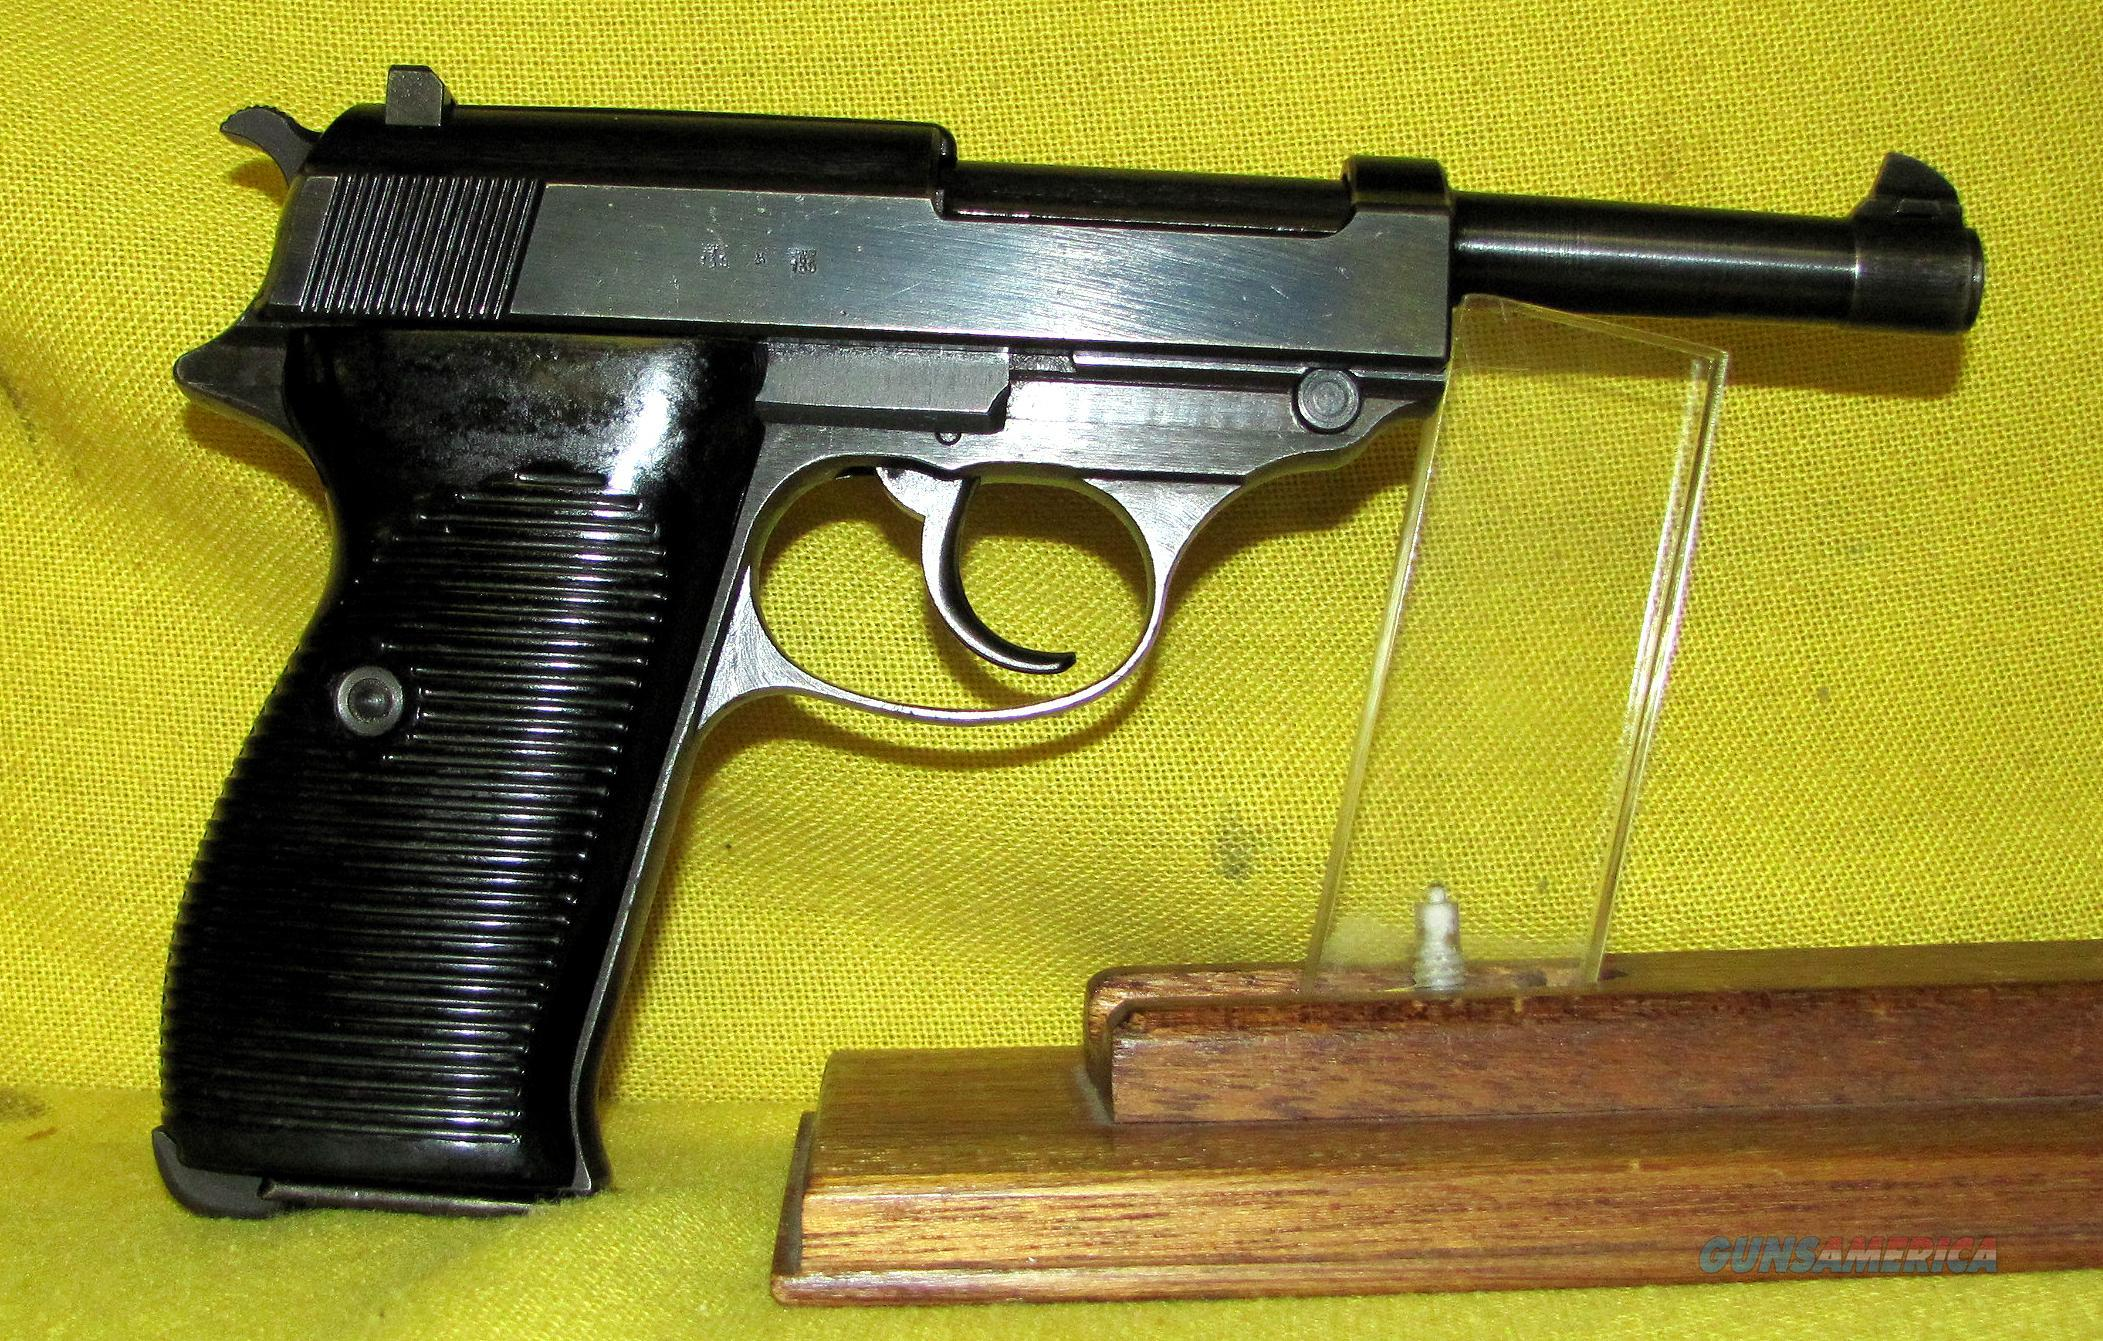 WALTHER BYF-43 (MFG BY MAUSER) P-38   Guns > Pistols > Walther Pistols > Pre-1945 > P-38